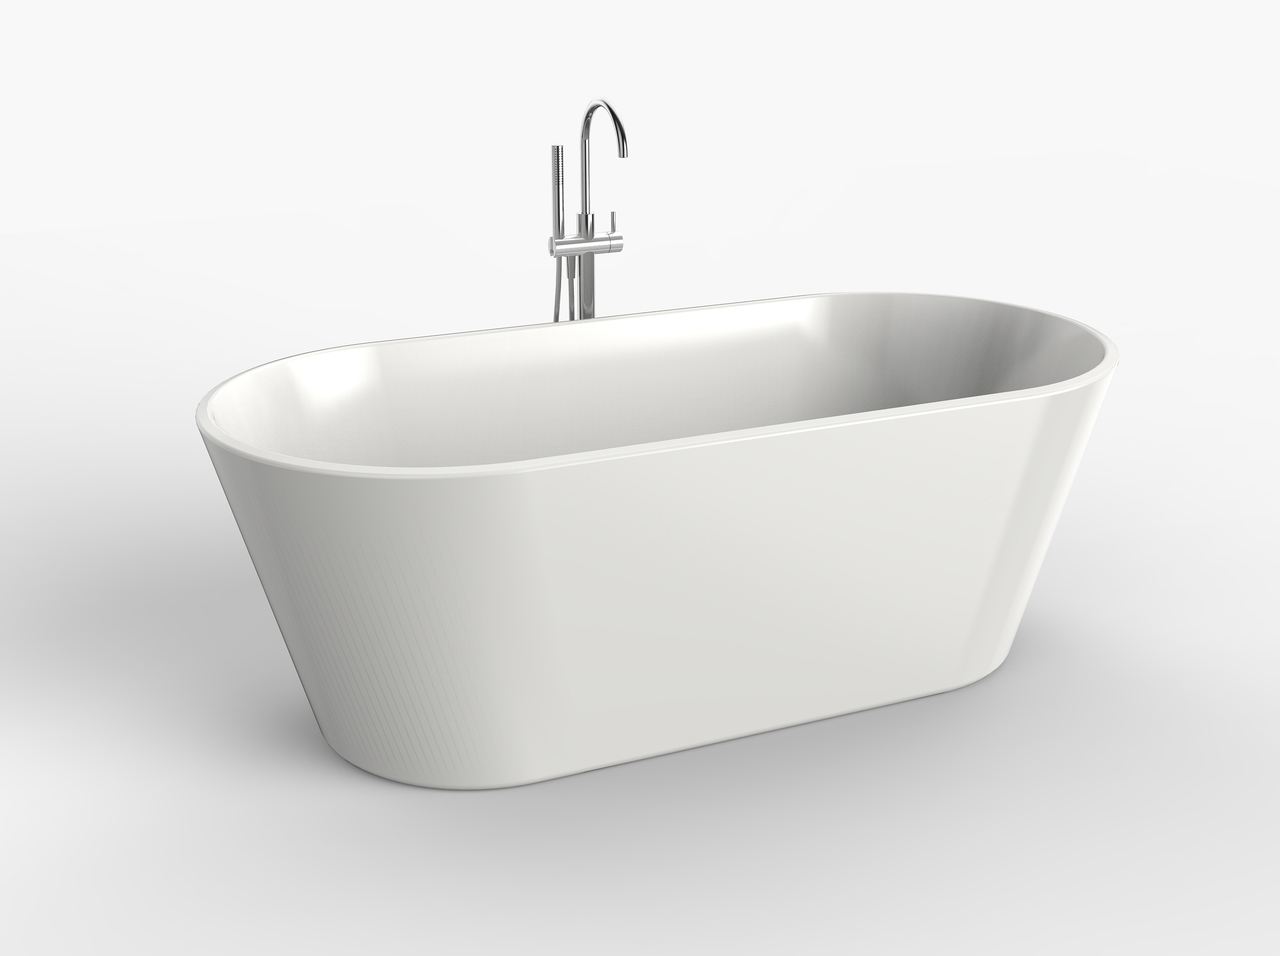 decor faucets nic freestanding bathroom tub brushed faucet shower throughout and nickel hand bathtub standing free